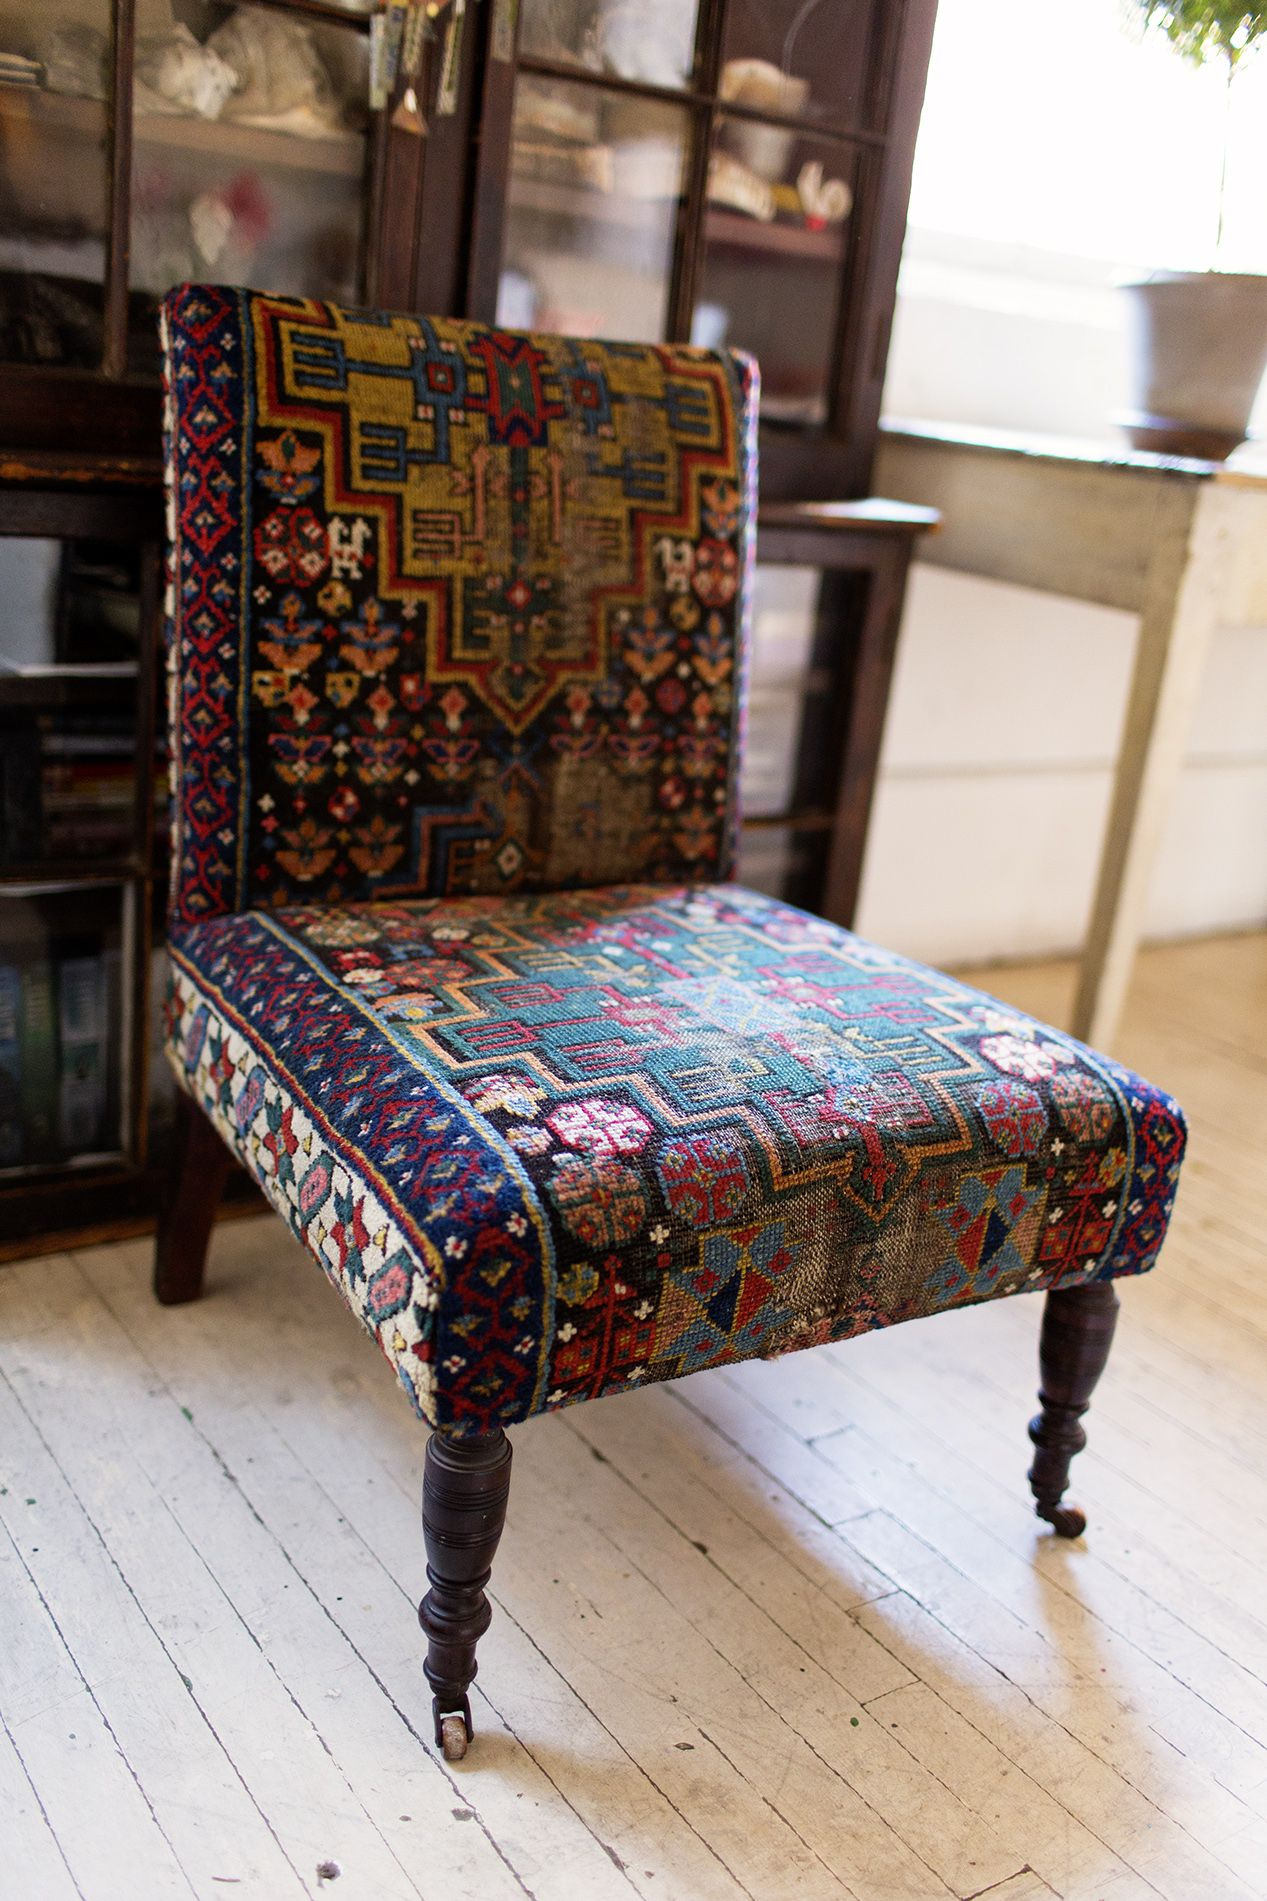 I Like The Idea Of Using A Rug For Upholstery Though I